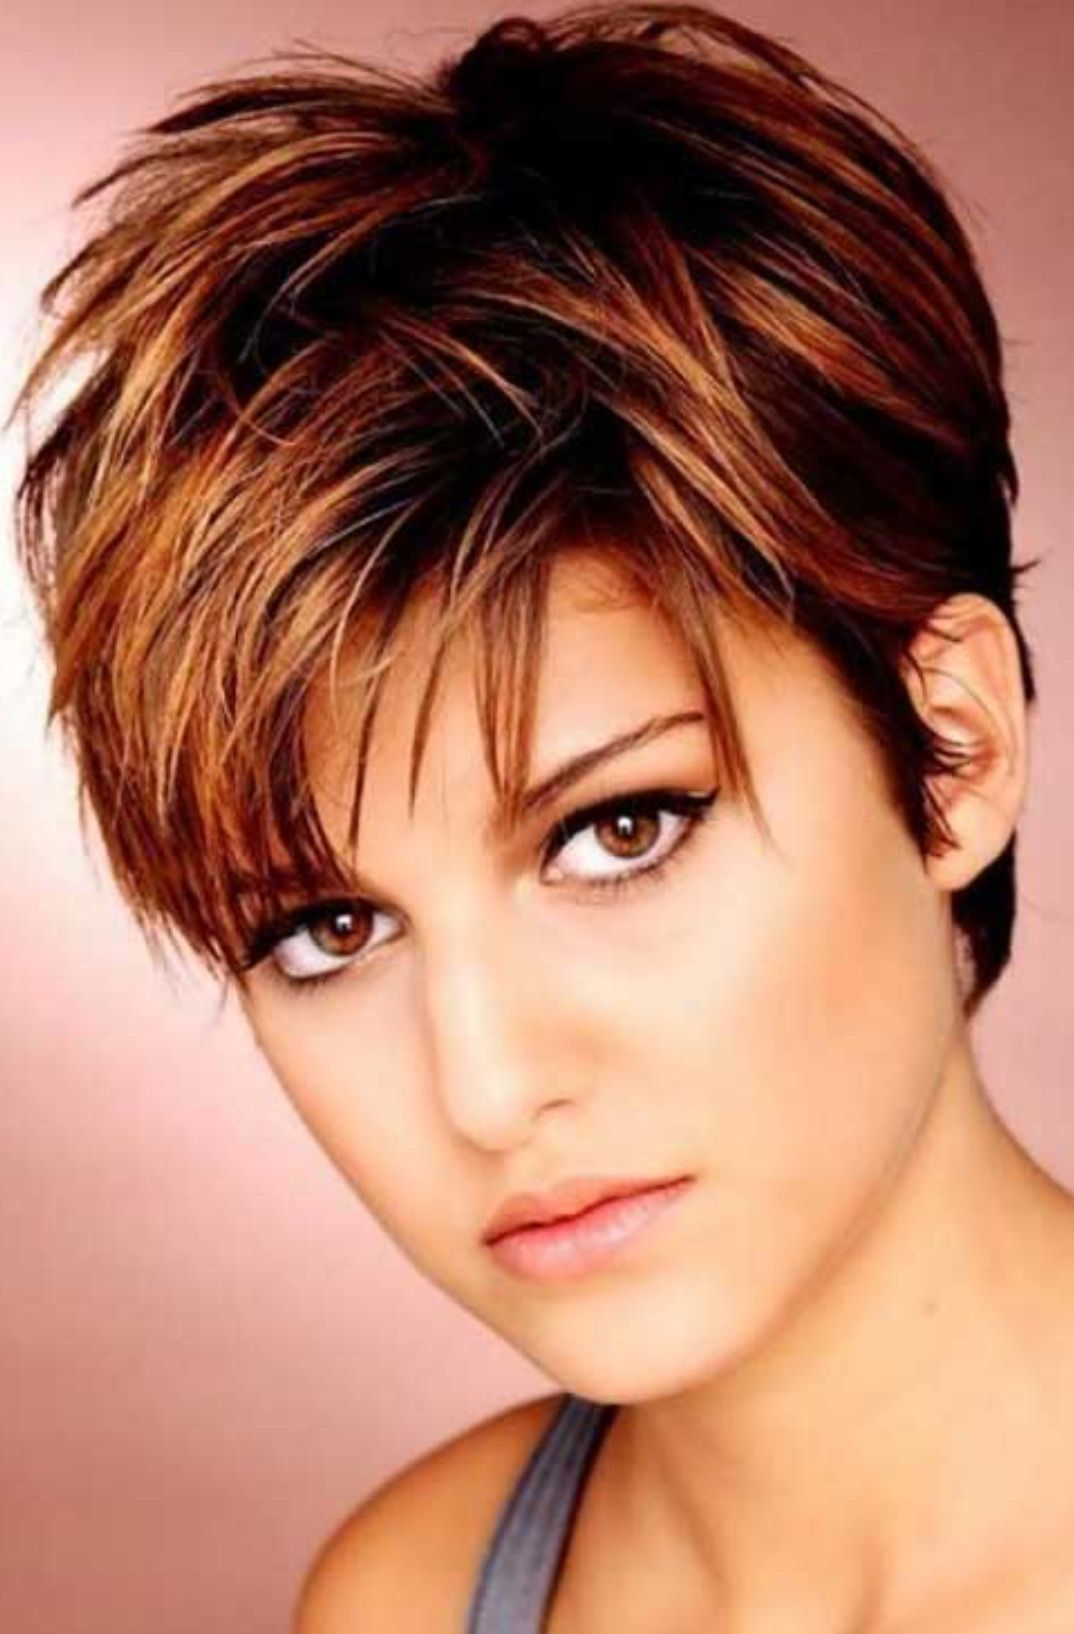 Pin by louisa williams on hairstyles pinterest short hair styles